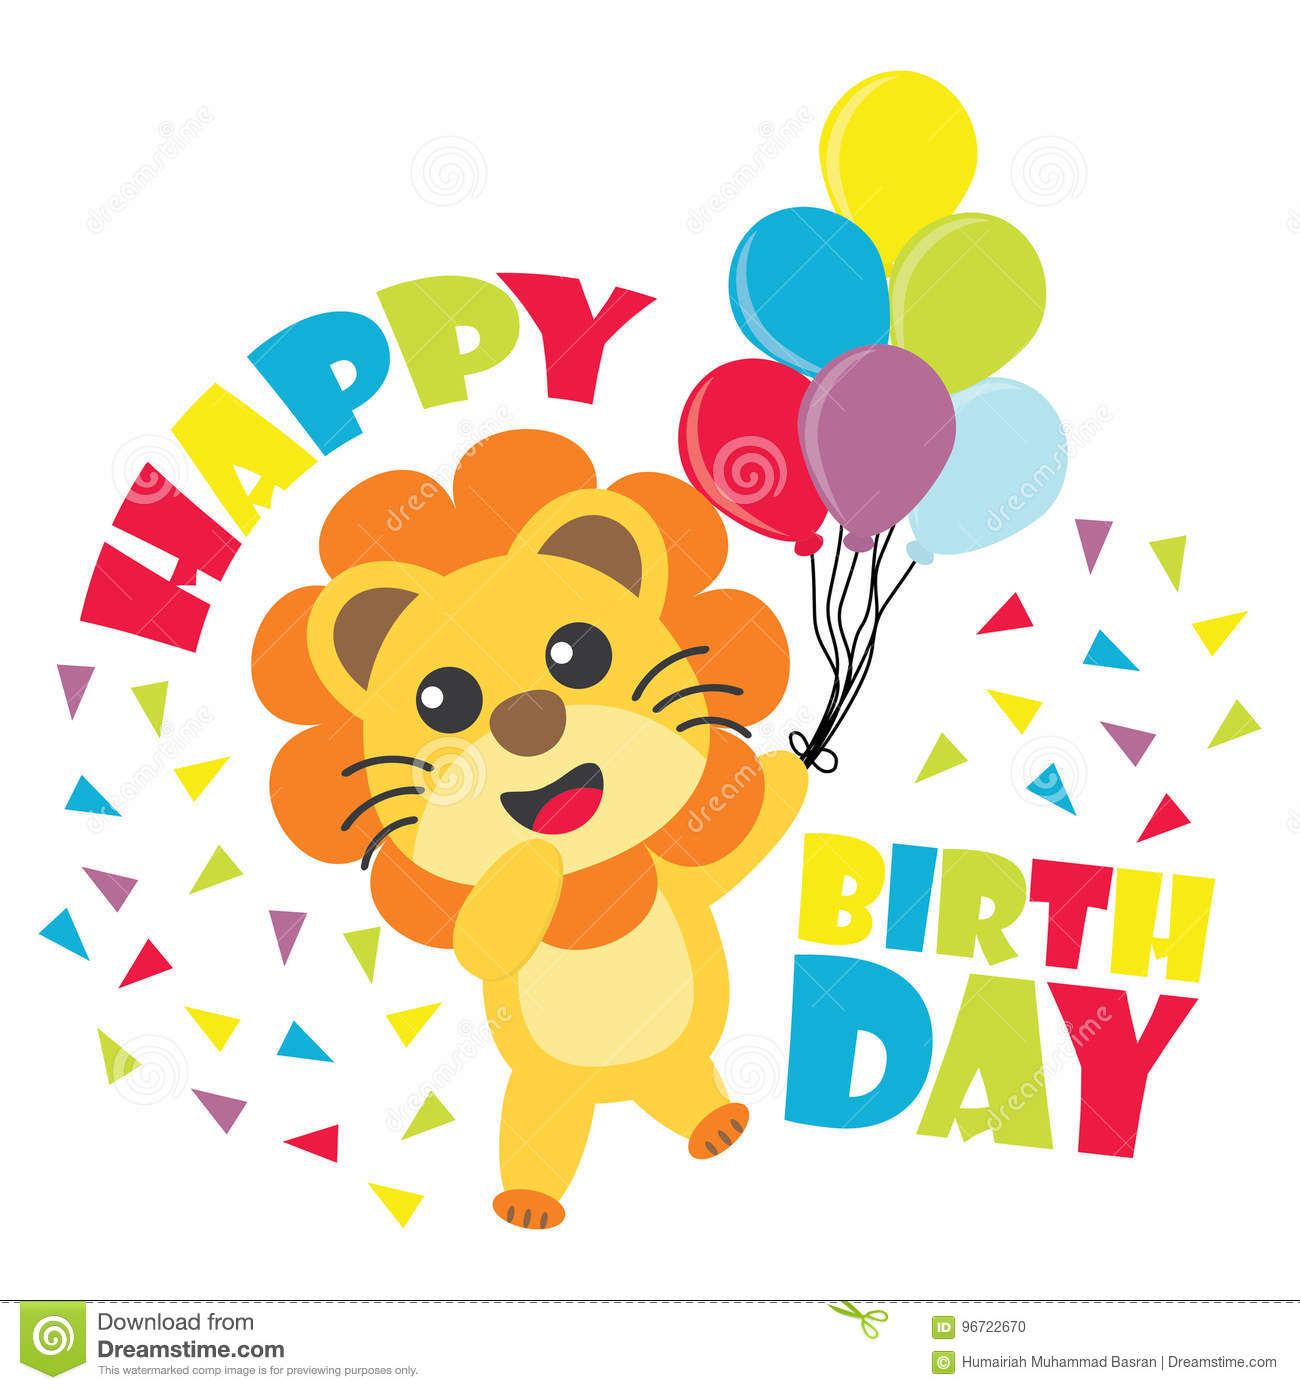 Birthday card with cute lion brings balloons cartoon illustration birthday card with cute lion brings balloons cartoon illustration for kid birthday invitation filmwisefo